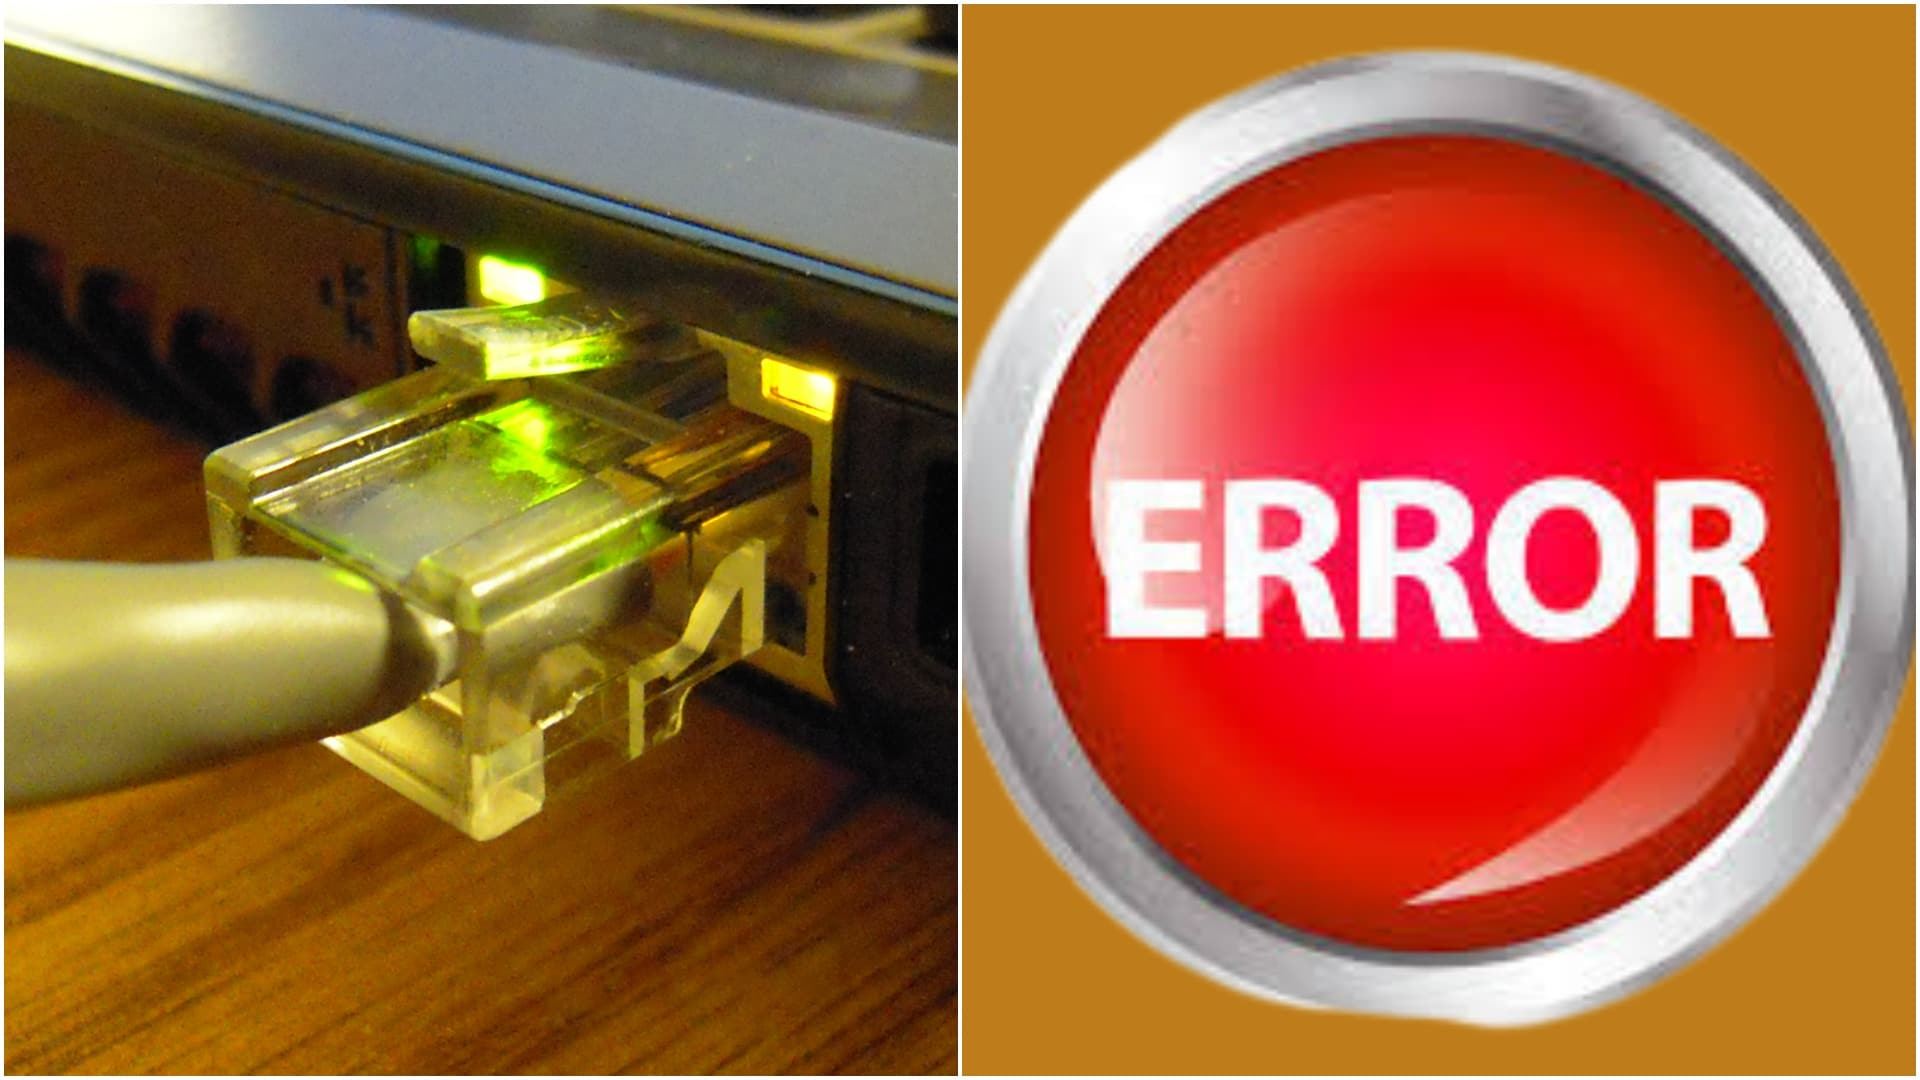 Ethernet cable and Error button